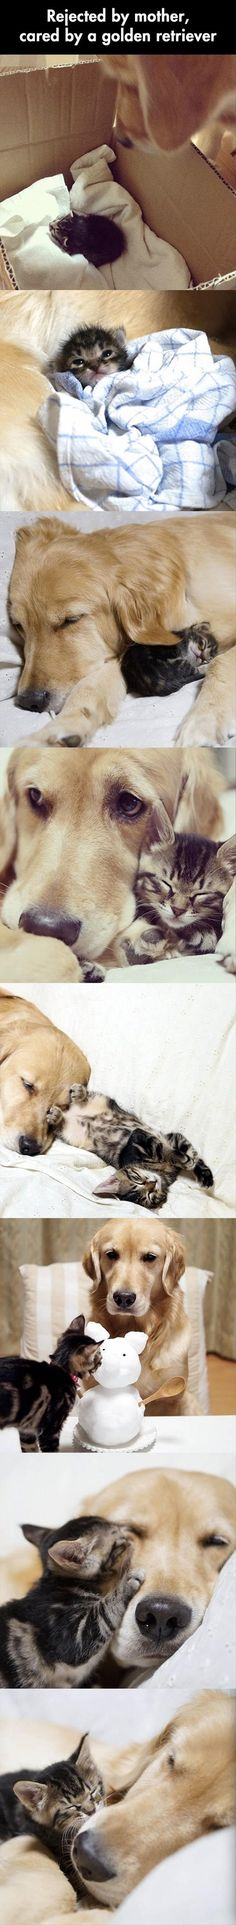 Cat rejected by its mother, cared for by a golden retriever.. Awww so cute